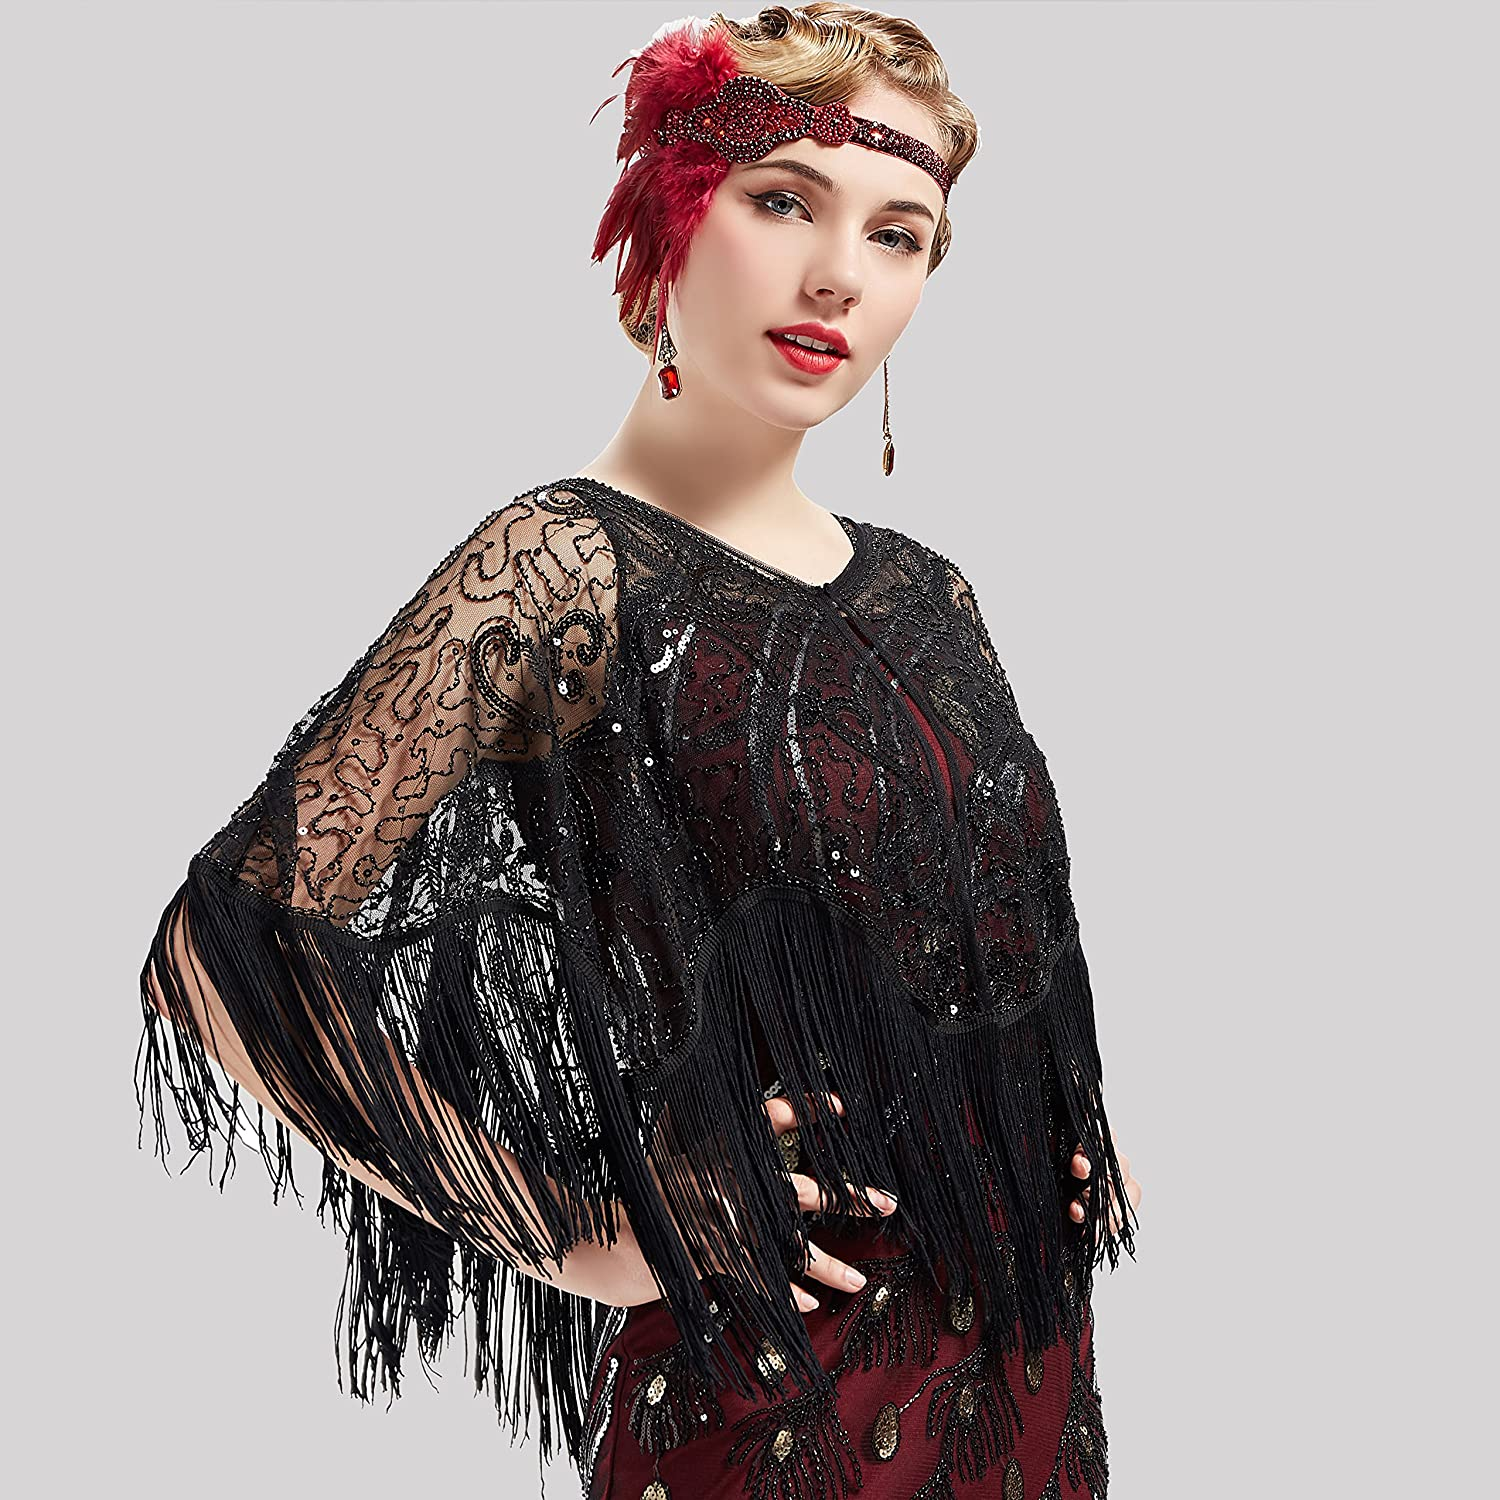 69ff7050c18de Shawls & Wraps | Vintage Lace & Fur Evening Scarves BABEYOND 1920s Shawl  Wraps Gatsby Beaded